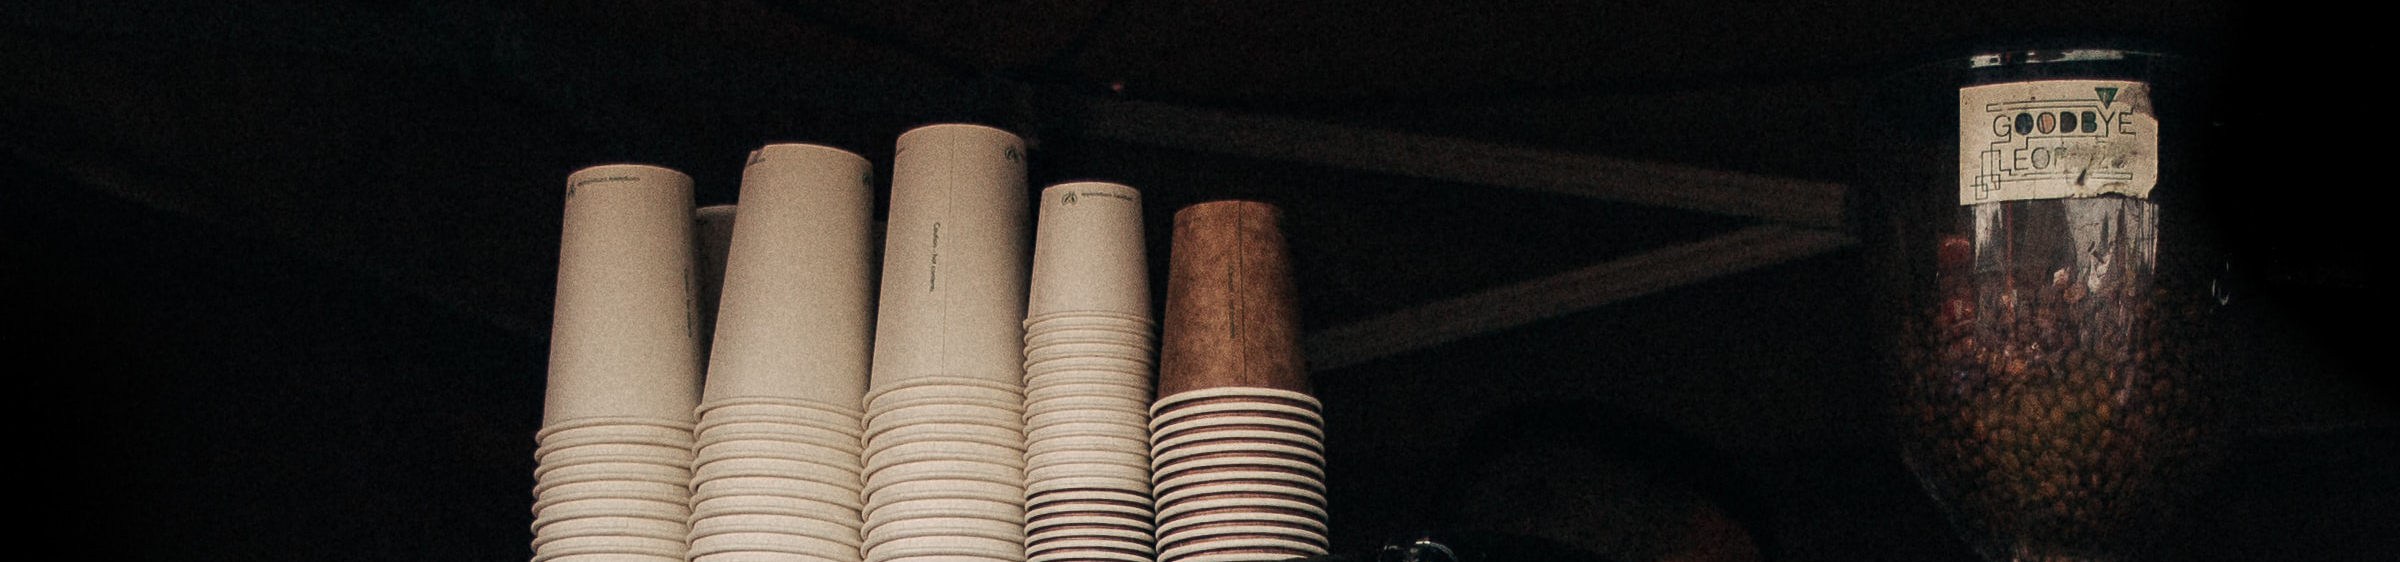 Coffee cups & coffee beans